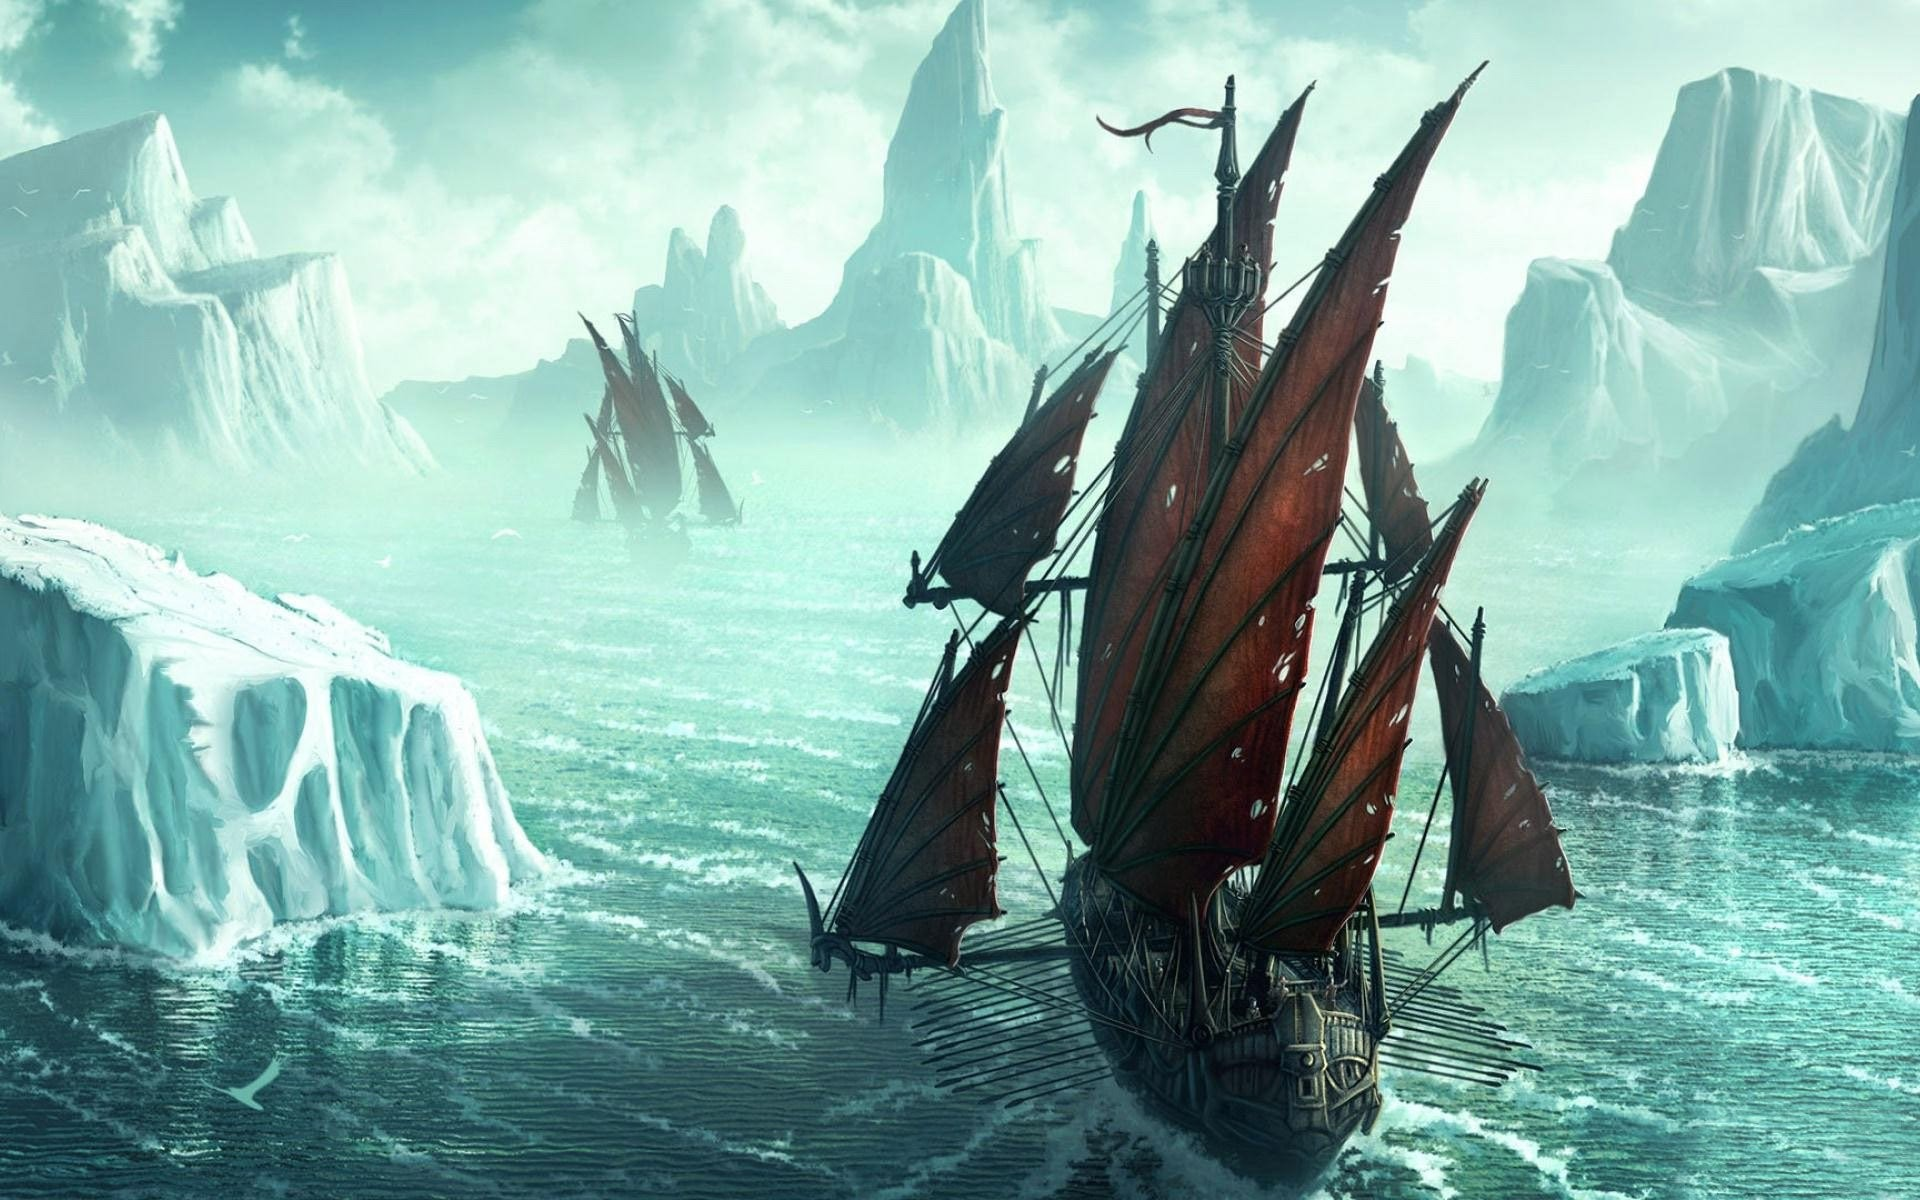 Pirate Ships In Icy Waters …